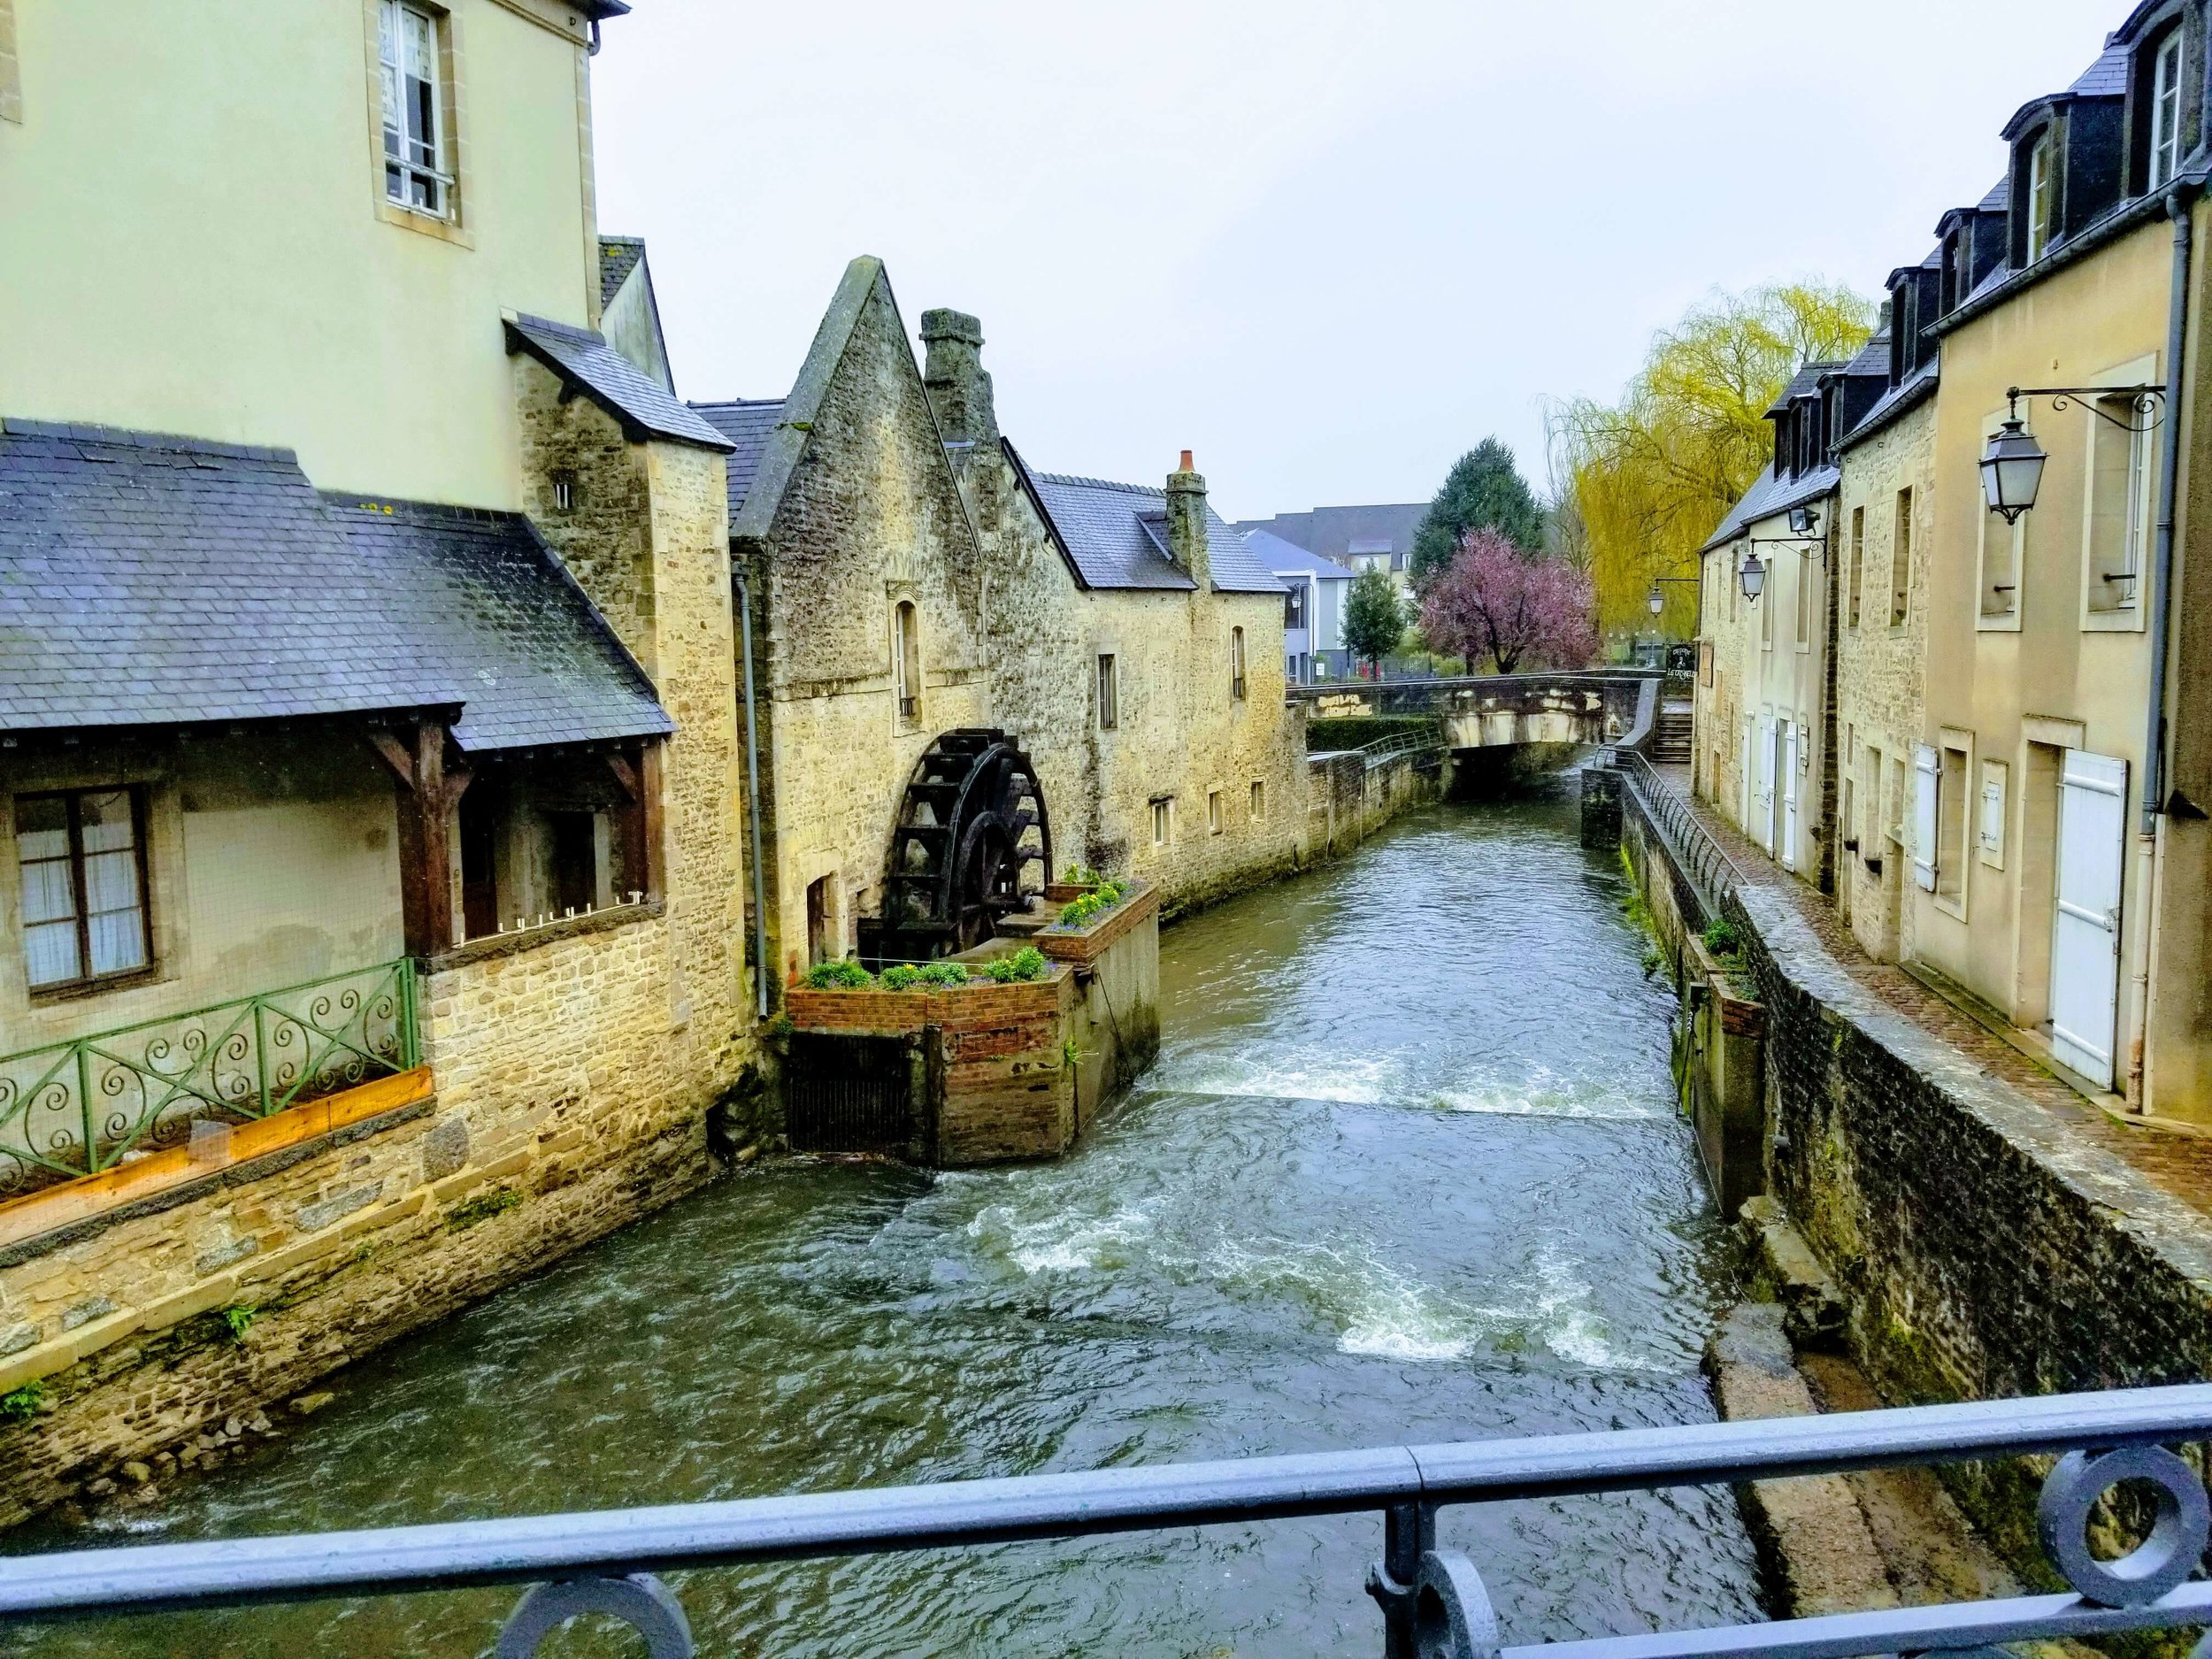 Picturesque canal through Bayeux